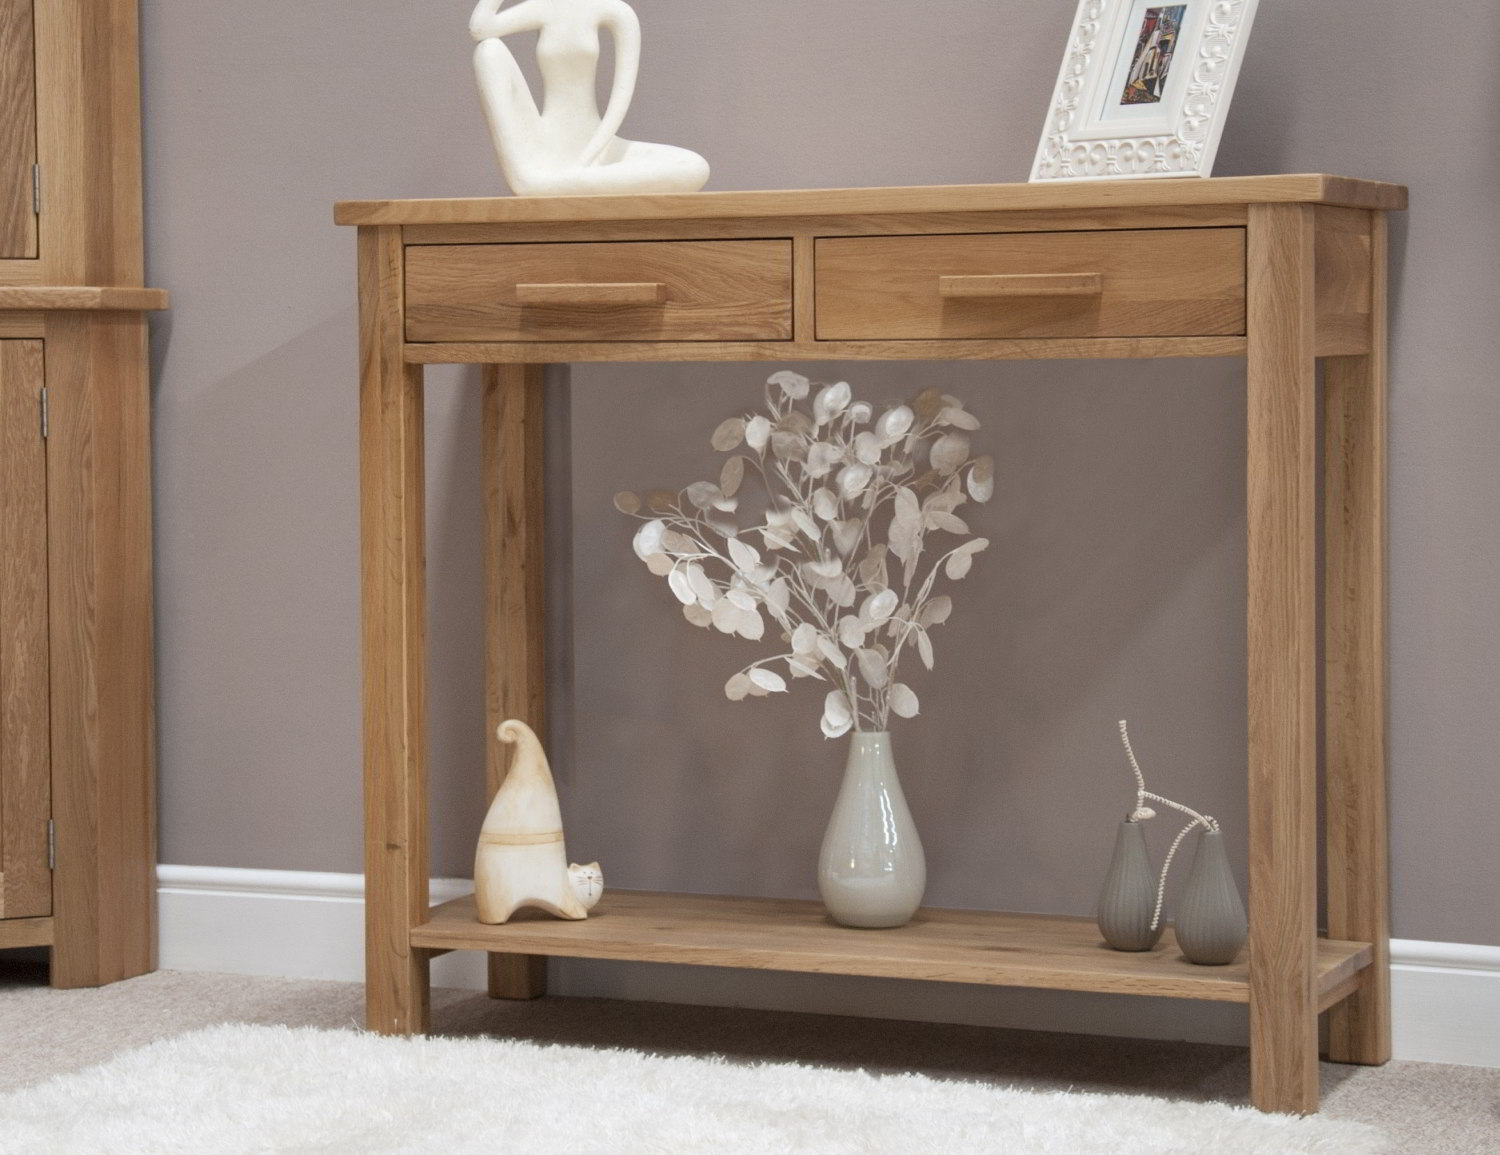 Eton Solid Oak Modern Furniture Hallway Hall Console Table